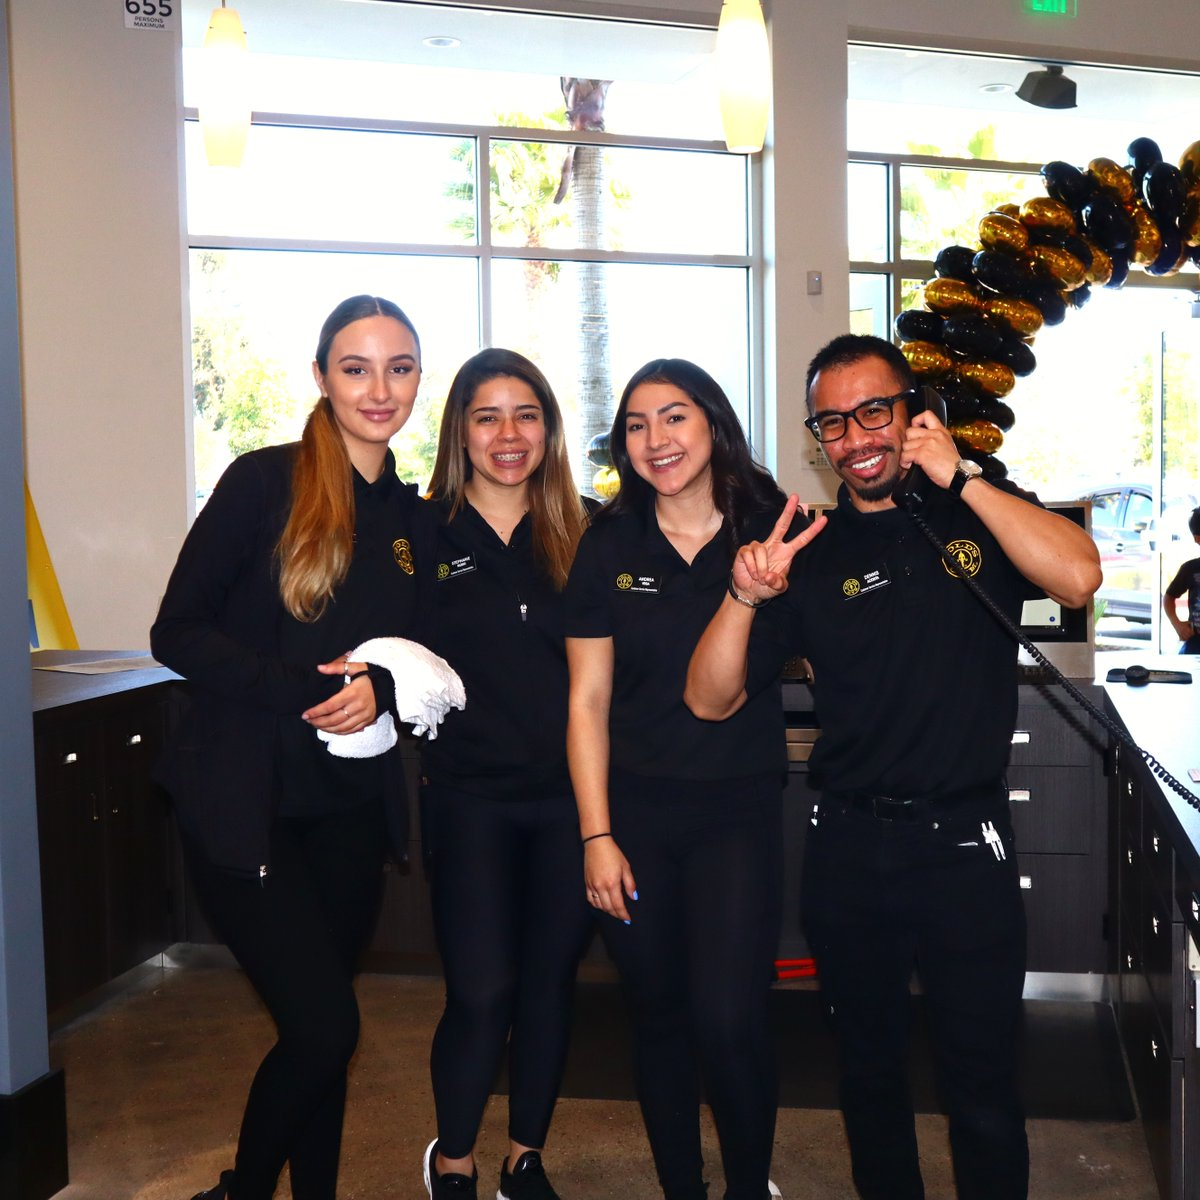 Our #GoldsGymOxnard team are ready to help you get started!   Come in today, take a tour of the new gym and become a part of the @GoldsGymSoCal family!  #GoldsGymSocal #GoldsFitness #SouthernCalifornia #Workout #PersonalTraining #Healthy #FitSpo #Motivationpic.twitter.com/3AajG76HoG